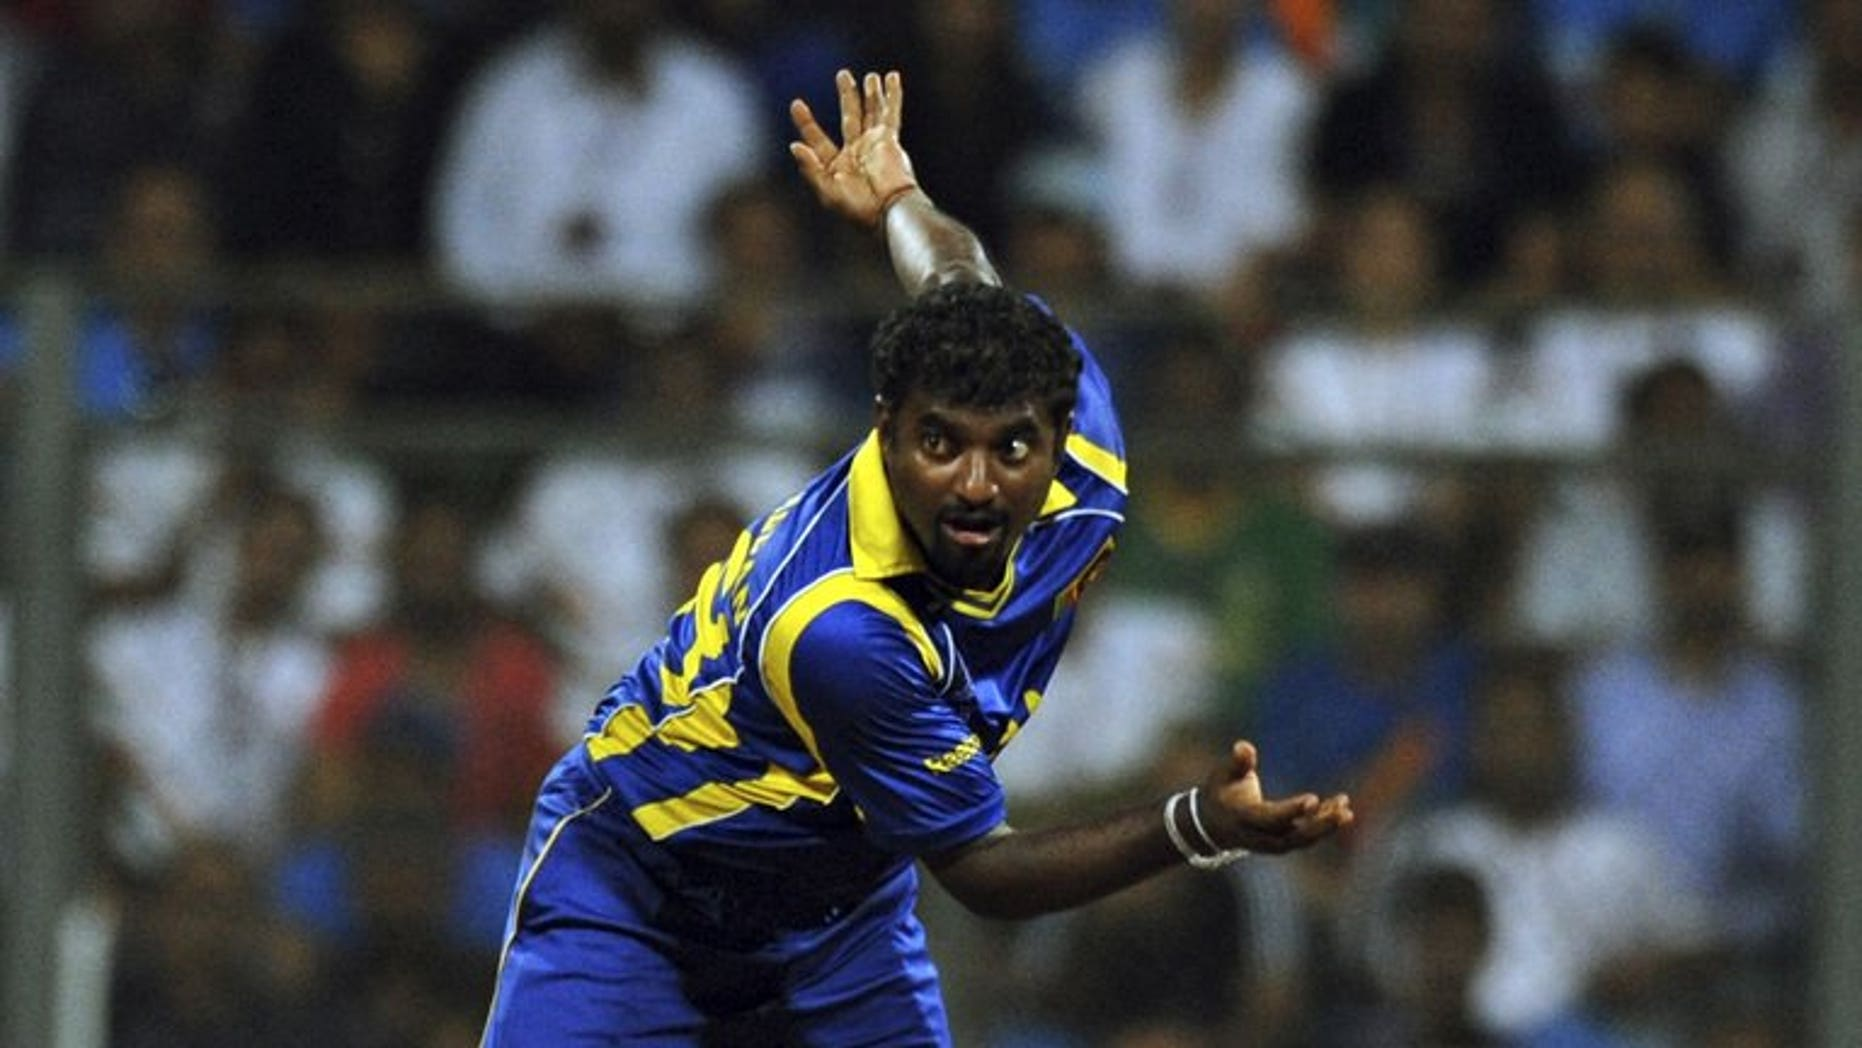 Muttiah Muralitharan, pictured during the ICC Cricket World Cup final between India and Sri Lanka, at Wankhede Stadium in Mumbai, on April 2, 2011. Muralitharan on Tuesday re-signed for the Australian Big Bash League with the Melbourne Renegades, who also unveiled Test quicks Peter Siddle and James Pattinson as part of their team.